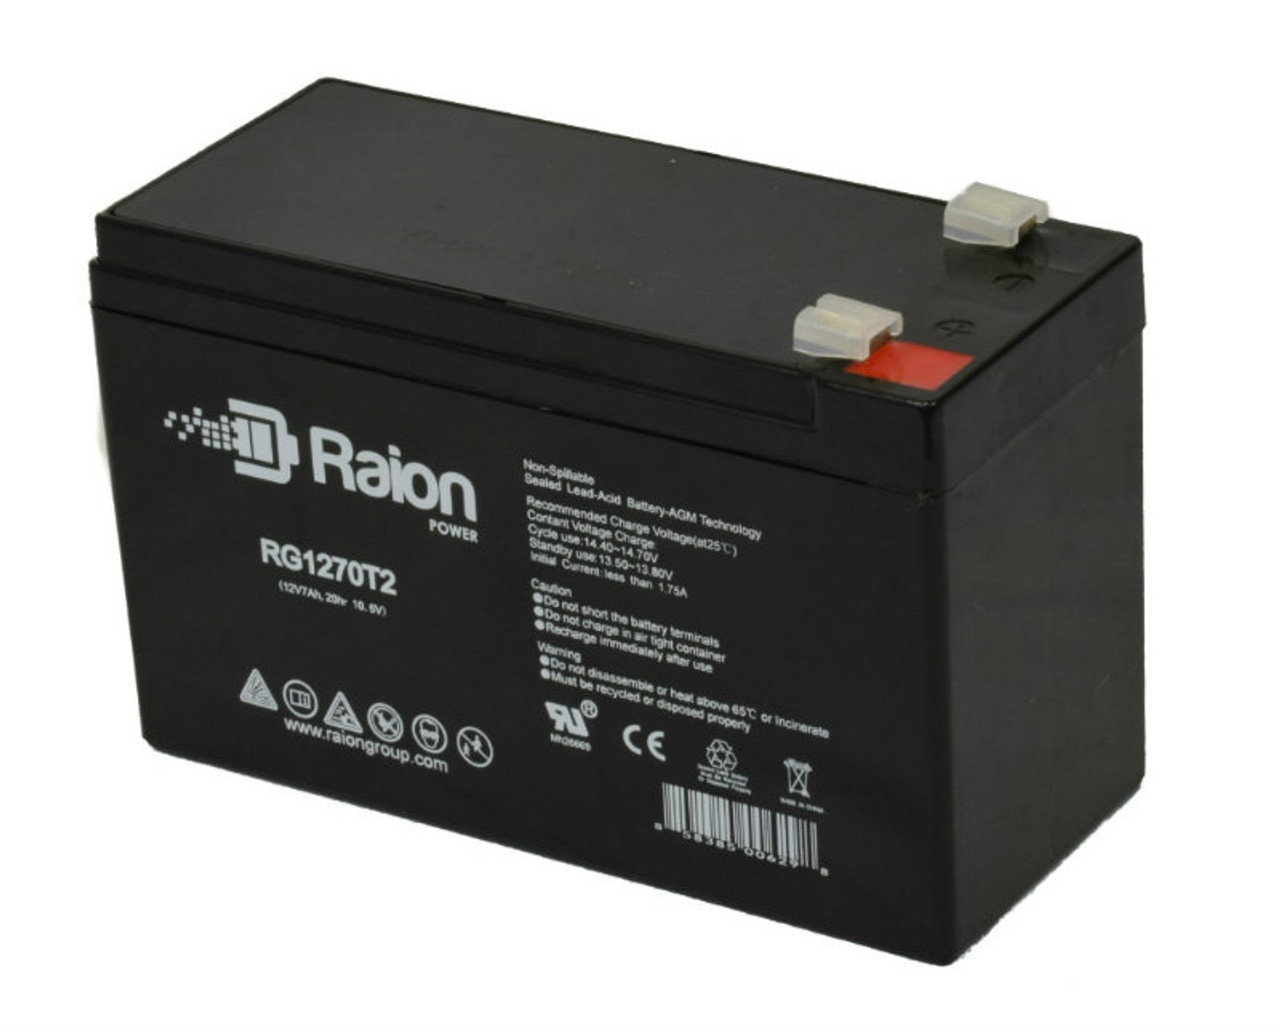 Raion Power RG1270T1 Replacement Battery for Yuntong YT-1270